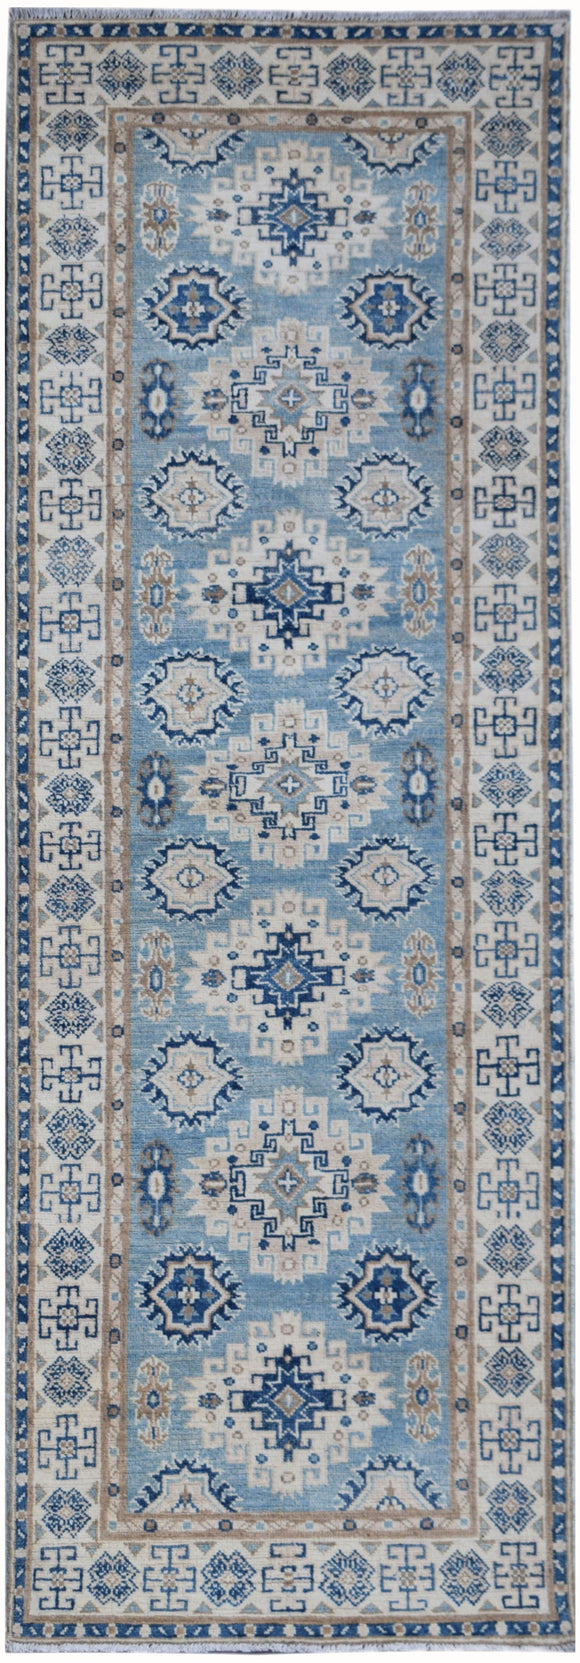 Handmade Sultan Collection Hallway Runner | 237 x 83 cm | 7'9